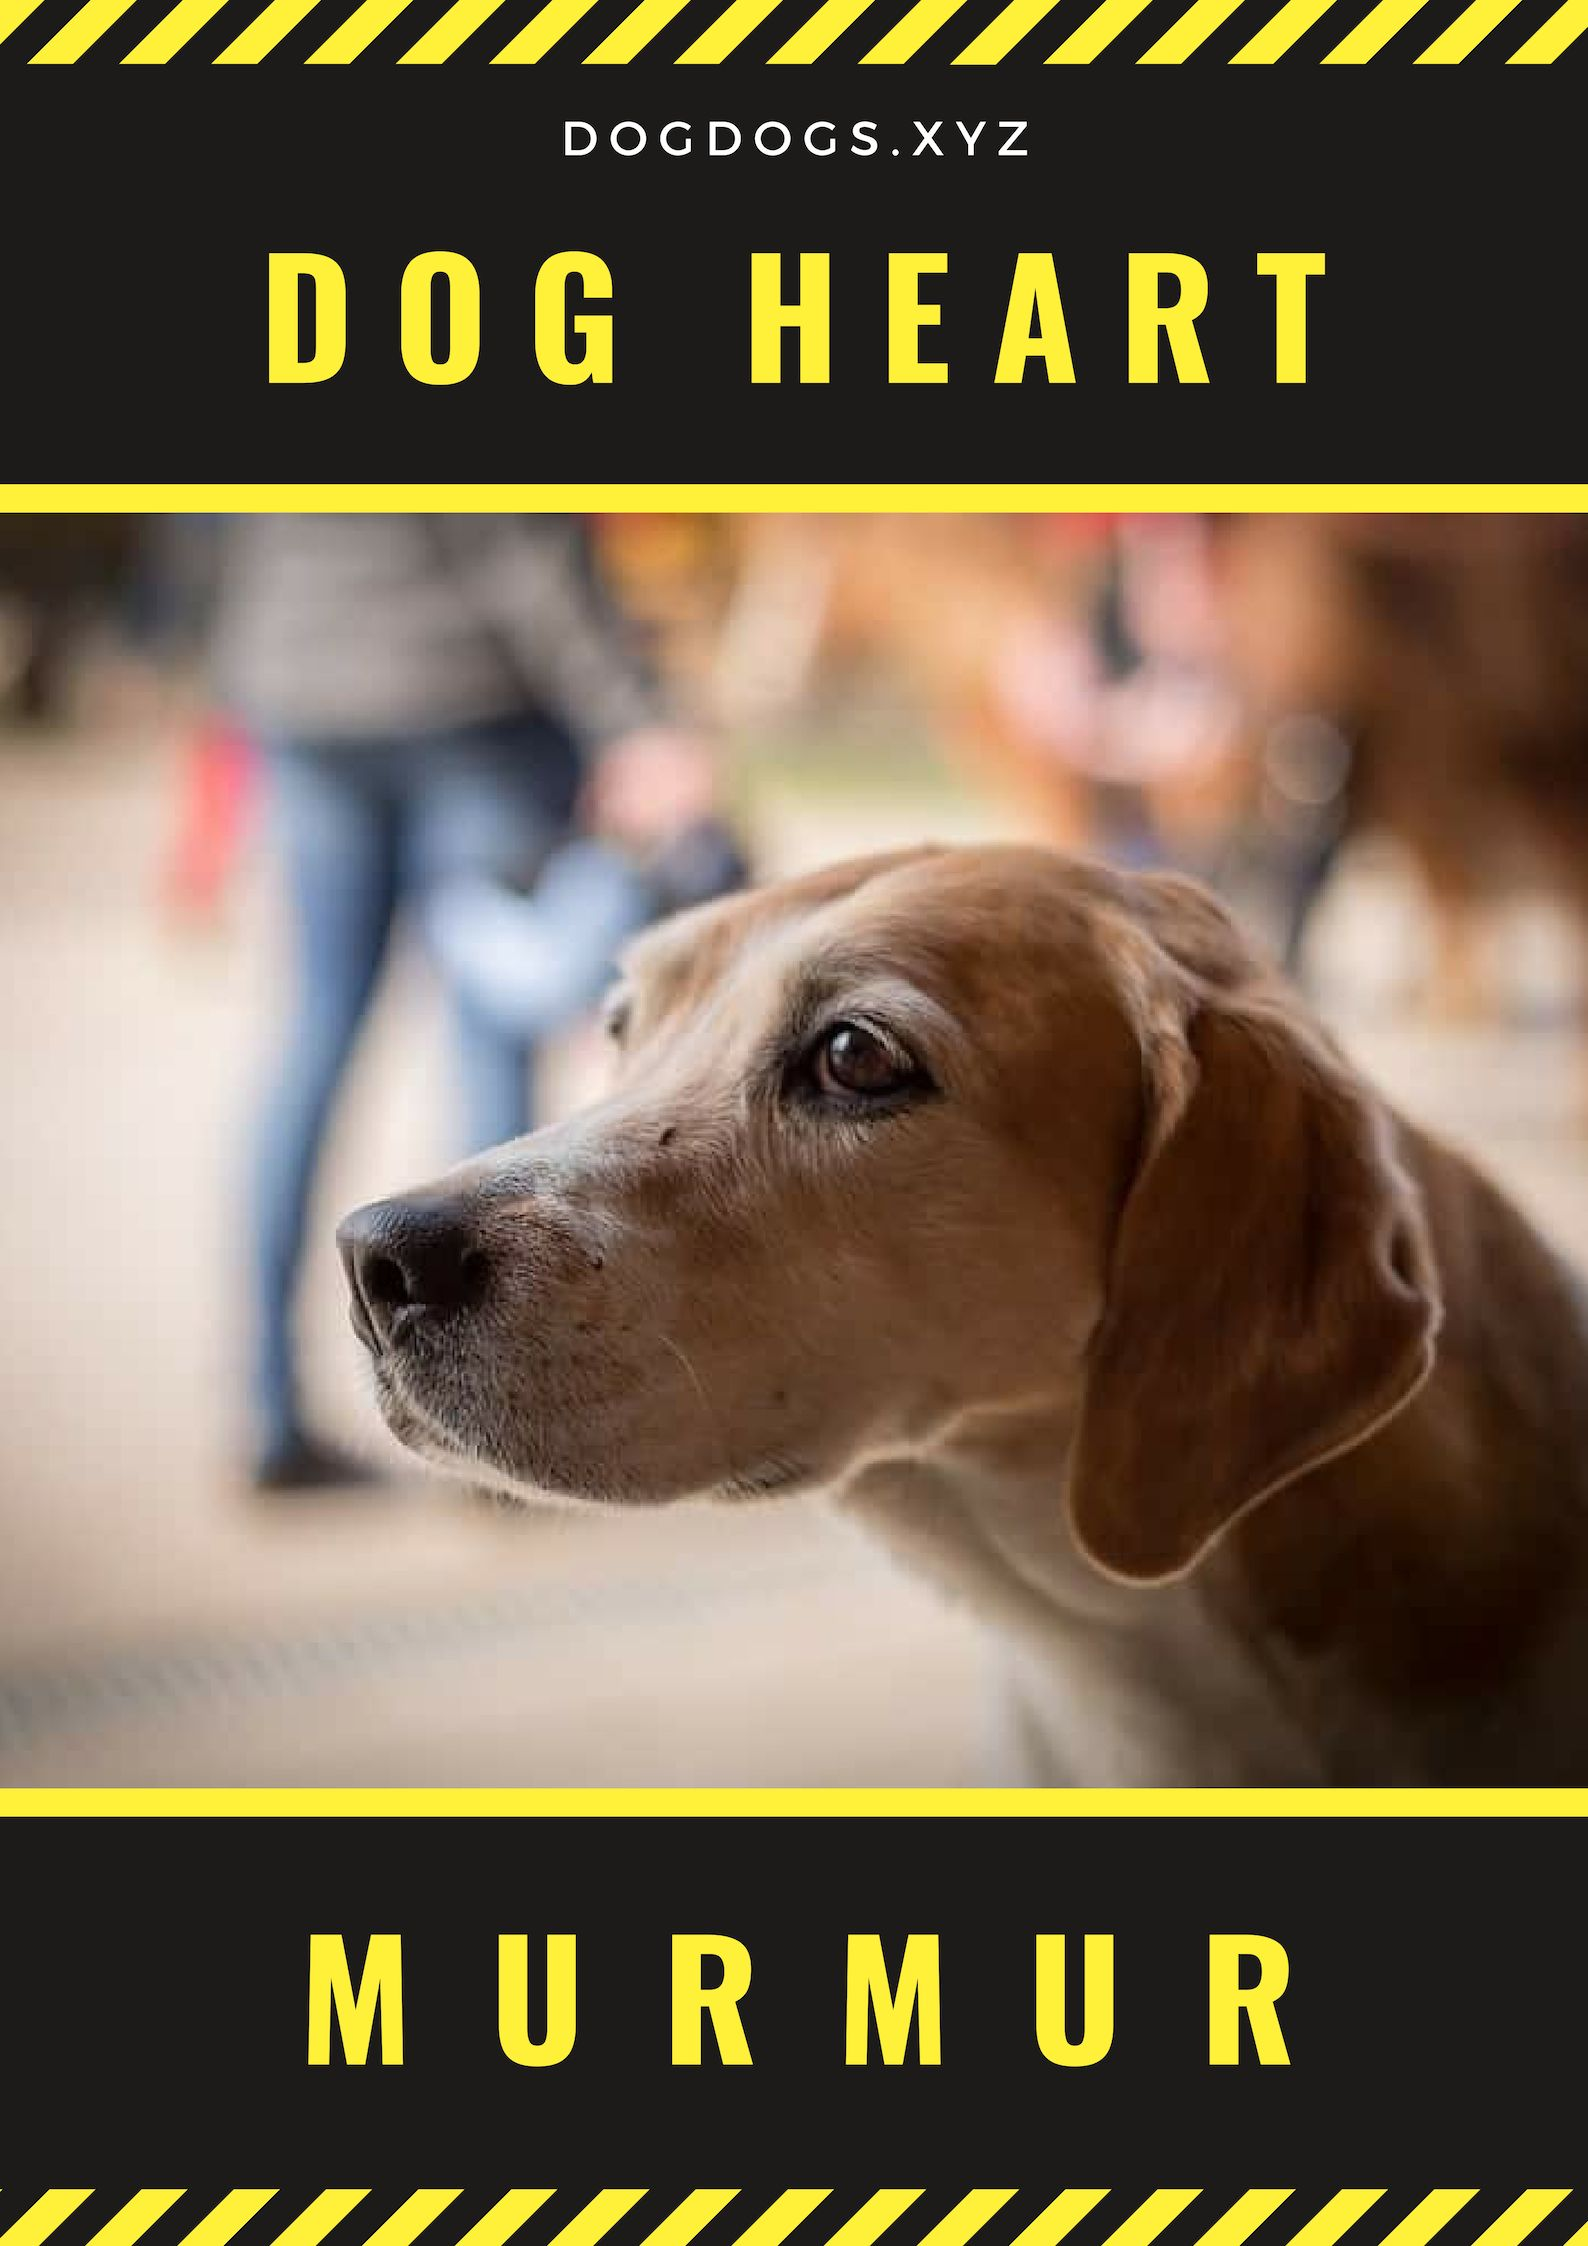 While Many Dogs Have An Acquired Heart Defect Or Murmur At Birth